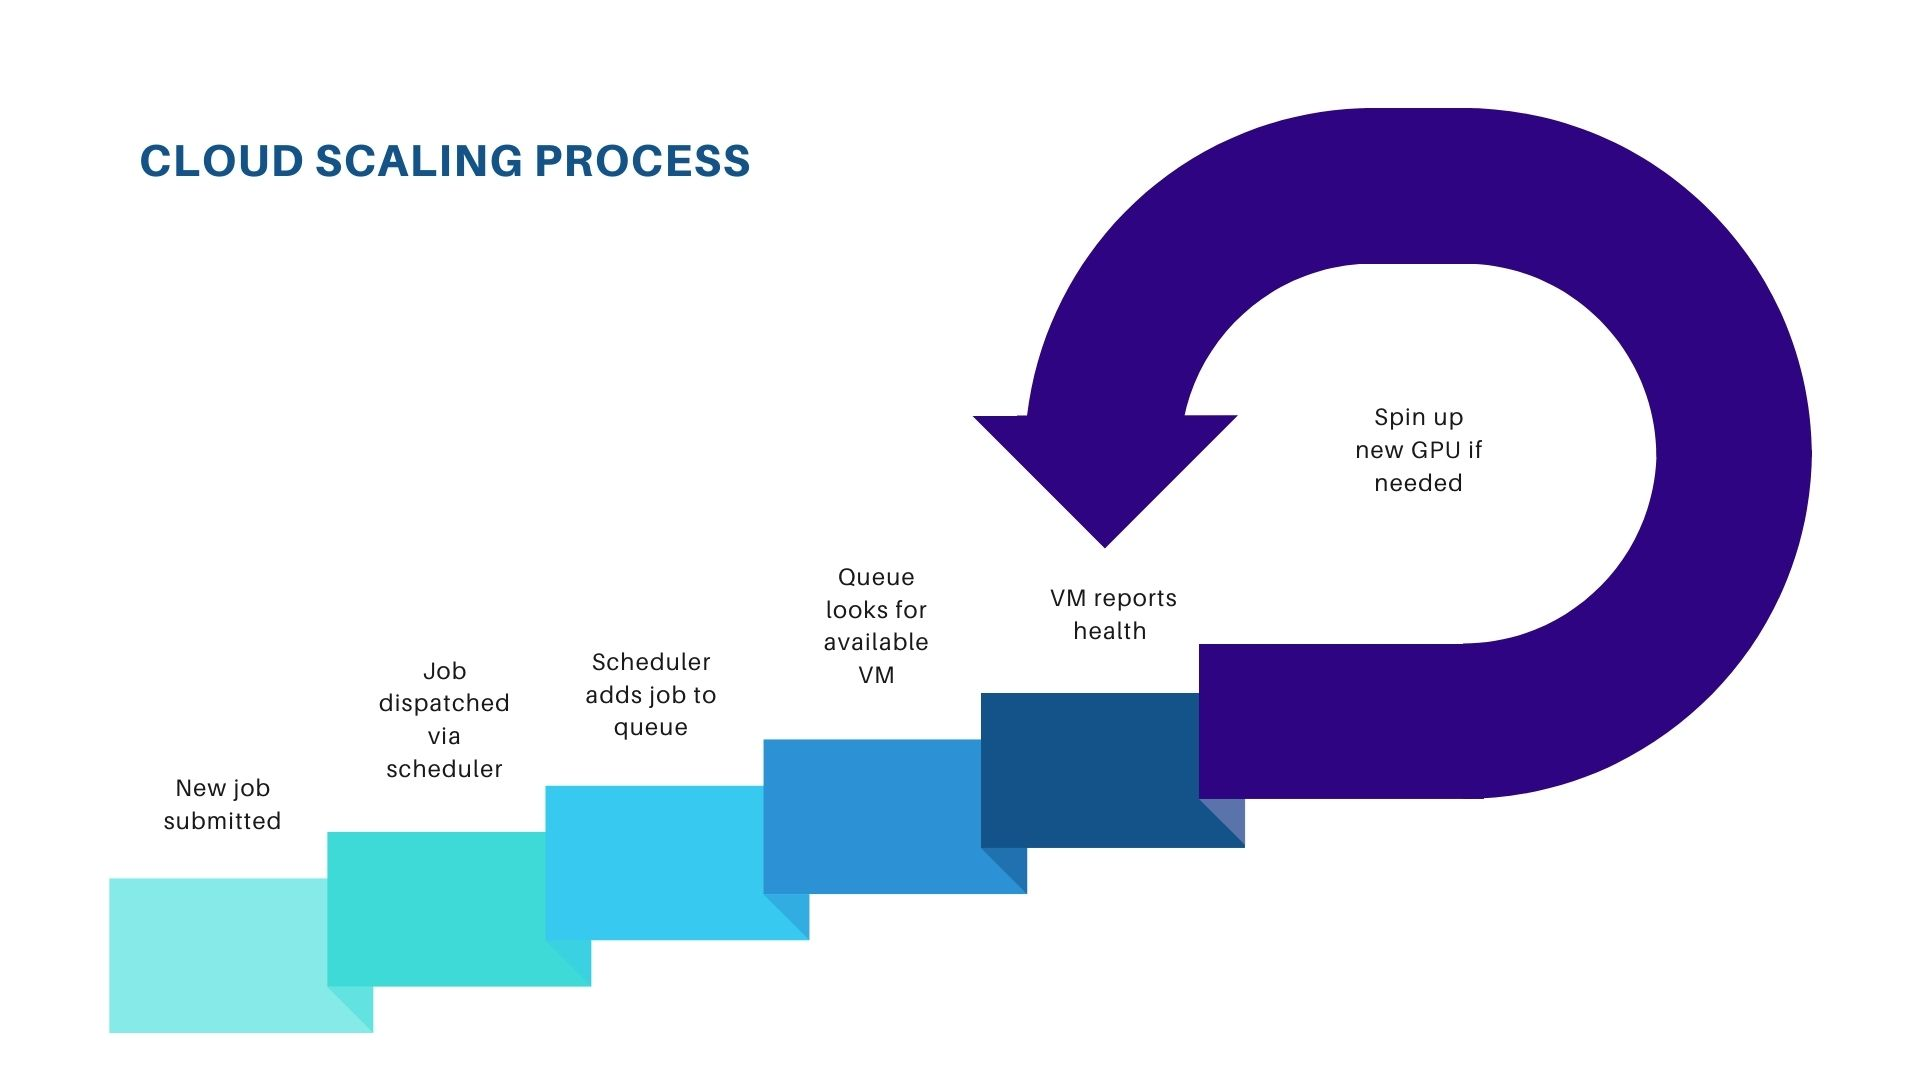 Cloud Scaling Process